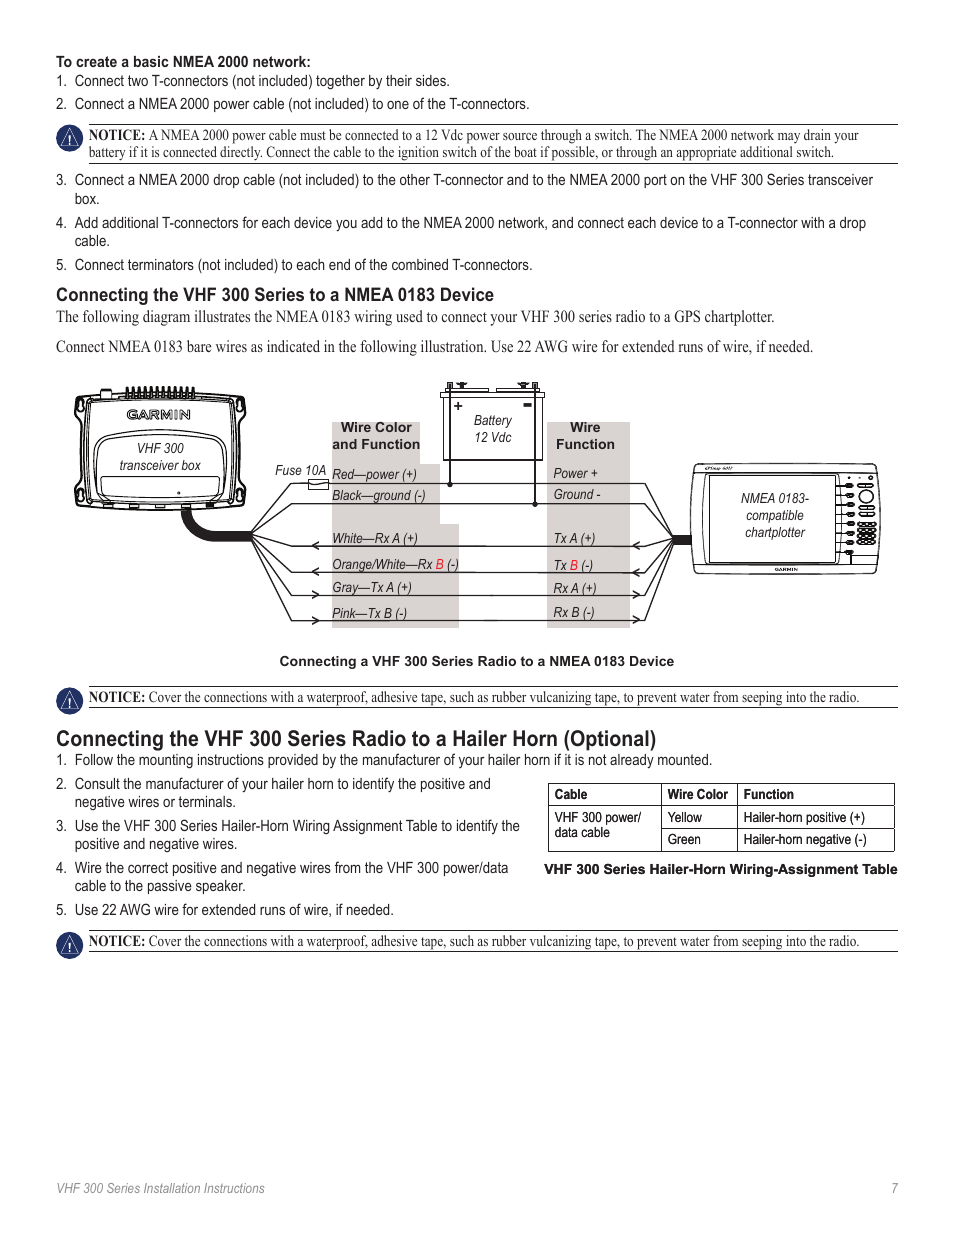 hight resolution of connecting the radio to a hailer horn garmin vhf ghs 10i user manual page 7 12